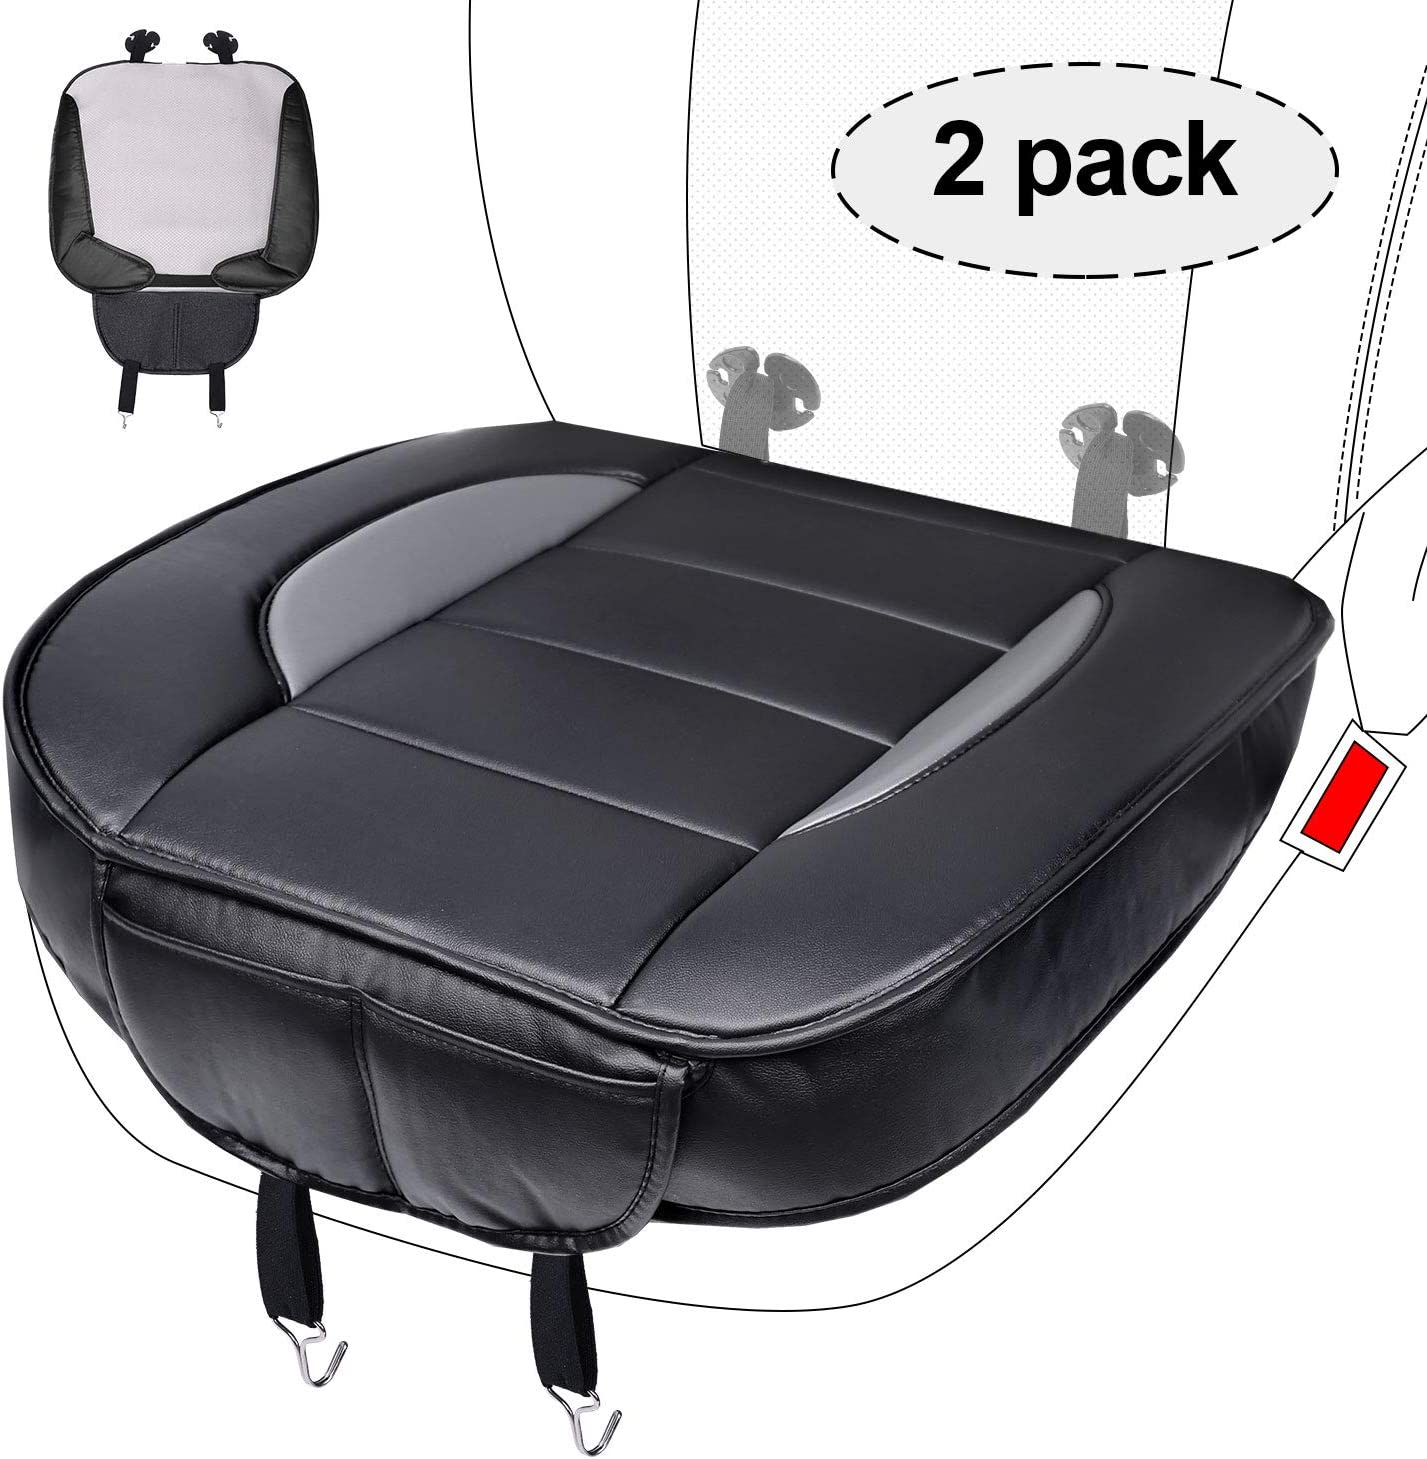 "Car Seat Cushion Cover PU Breathable 2pc Car Interior Black with Gray Universal Seat Cover 0.5"" Thickness for Sedan Truck SUV Minivan Edge Wrapping"